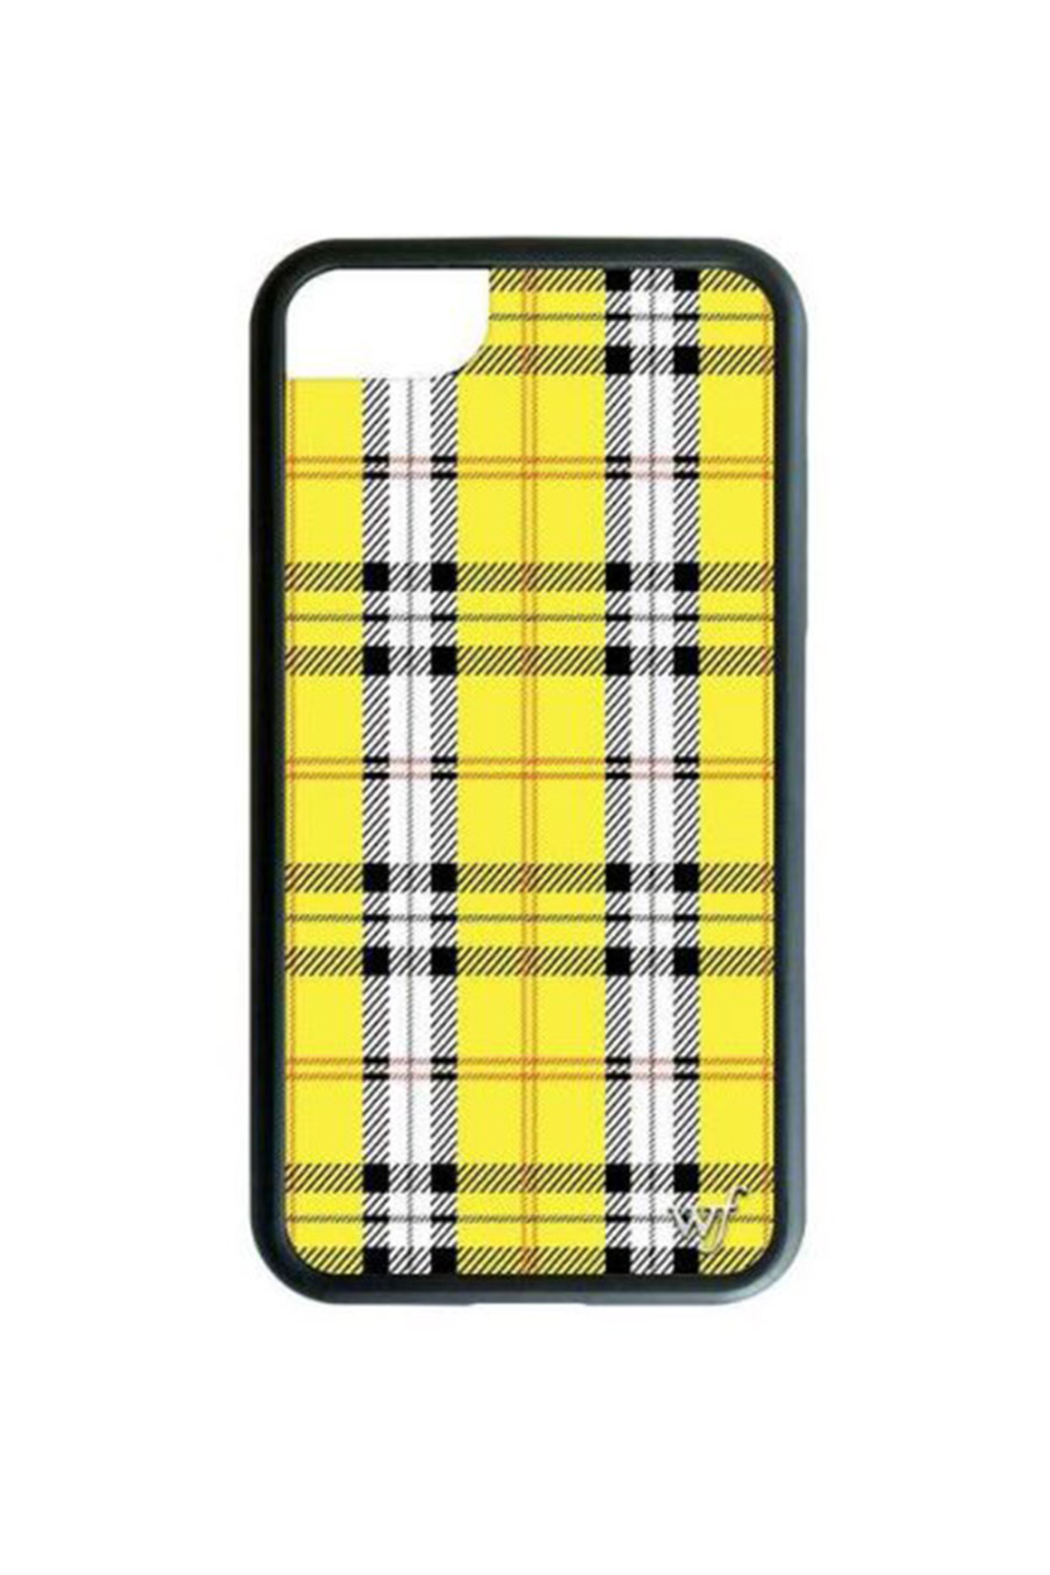 Promo Code For Wf Cases Iphone 6 5cf70 67ce0